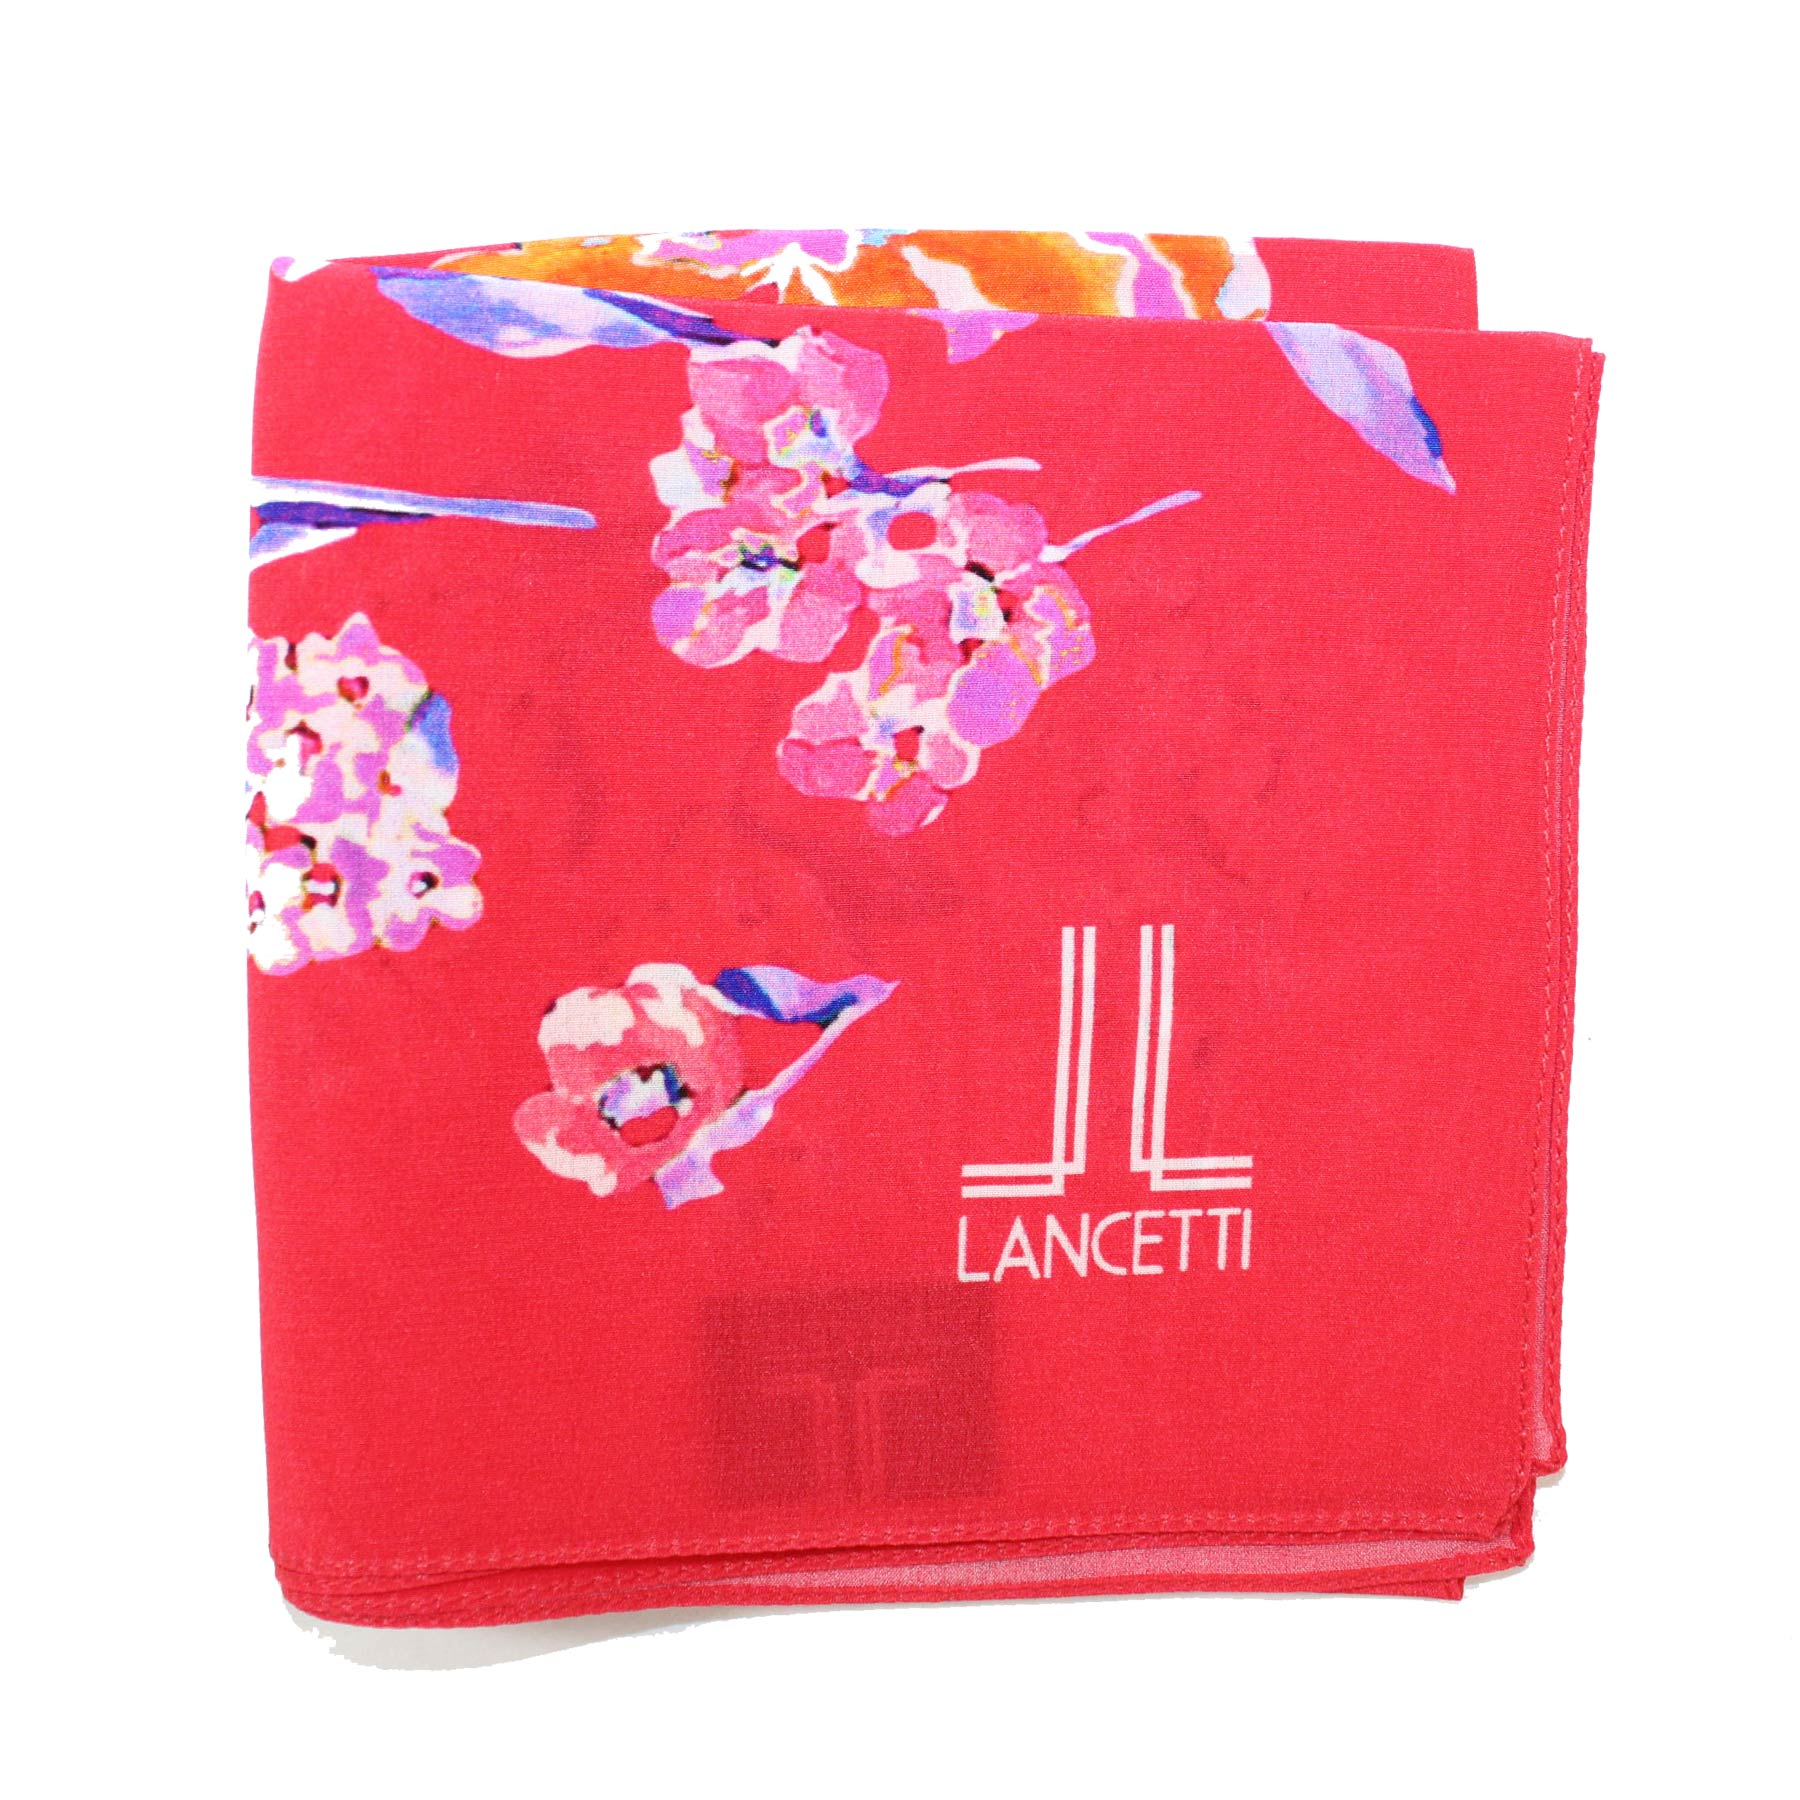 Lancetti Small Silk Scarf Red Floral - Made In Italy SALE